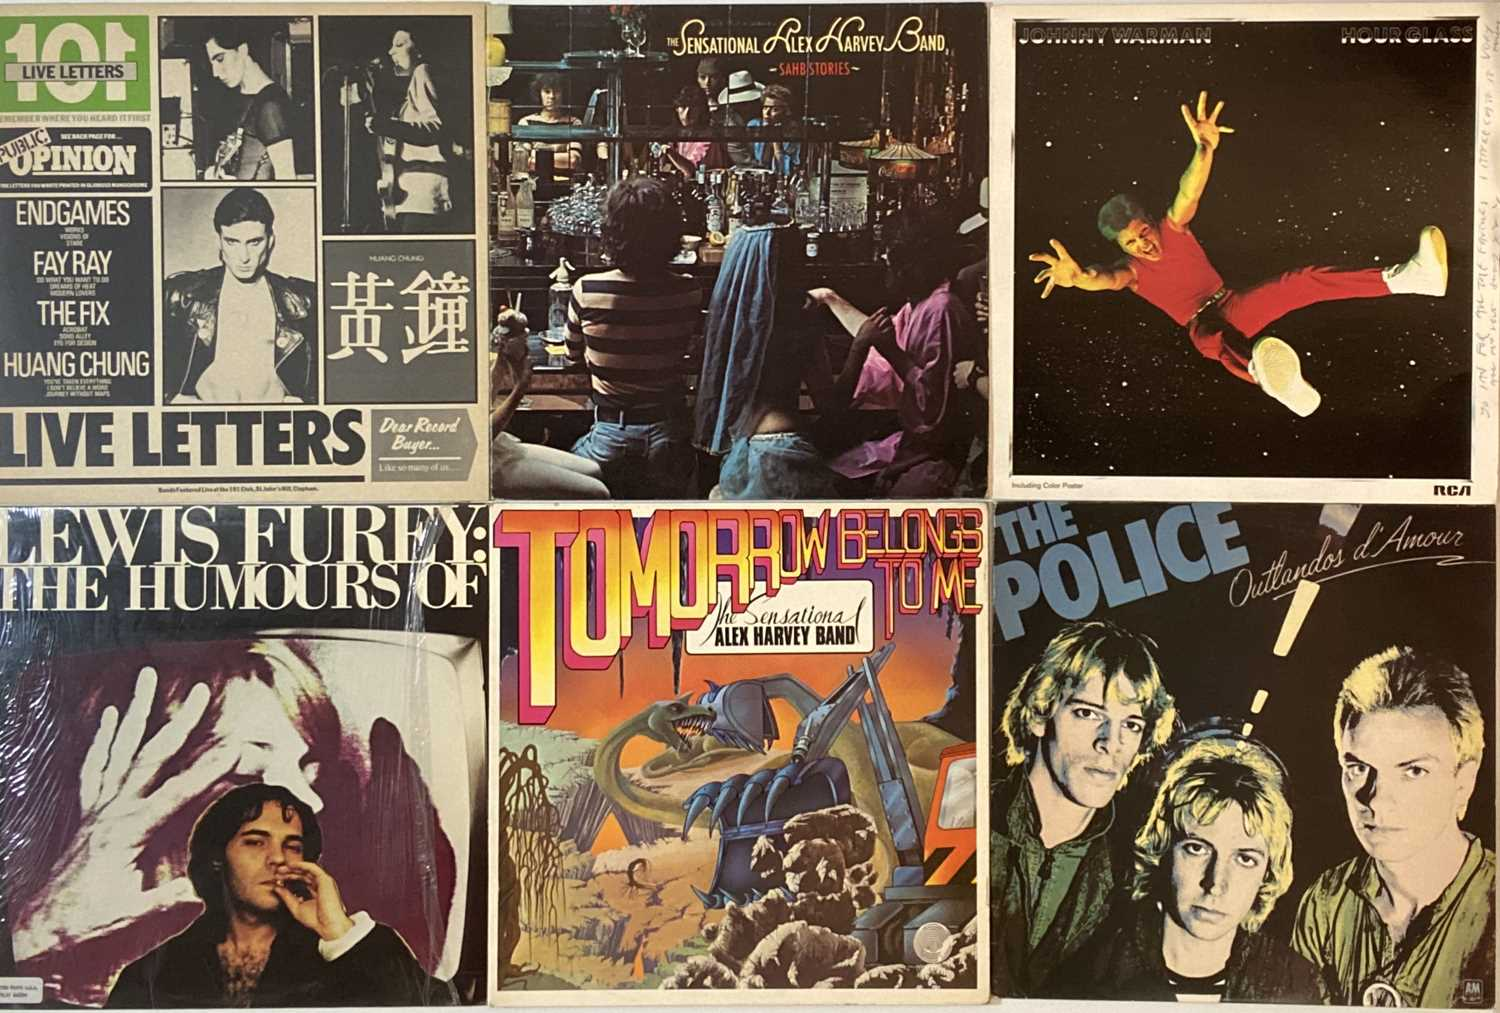 """PUNK/ WAVE/ COOL POP/ GLAM - LPs/ 12"""" - Image 4 of 6"""